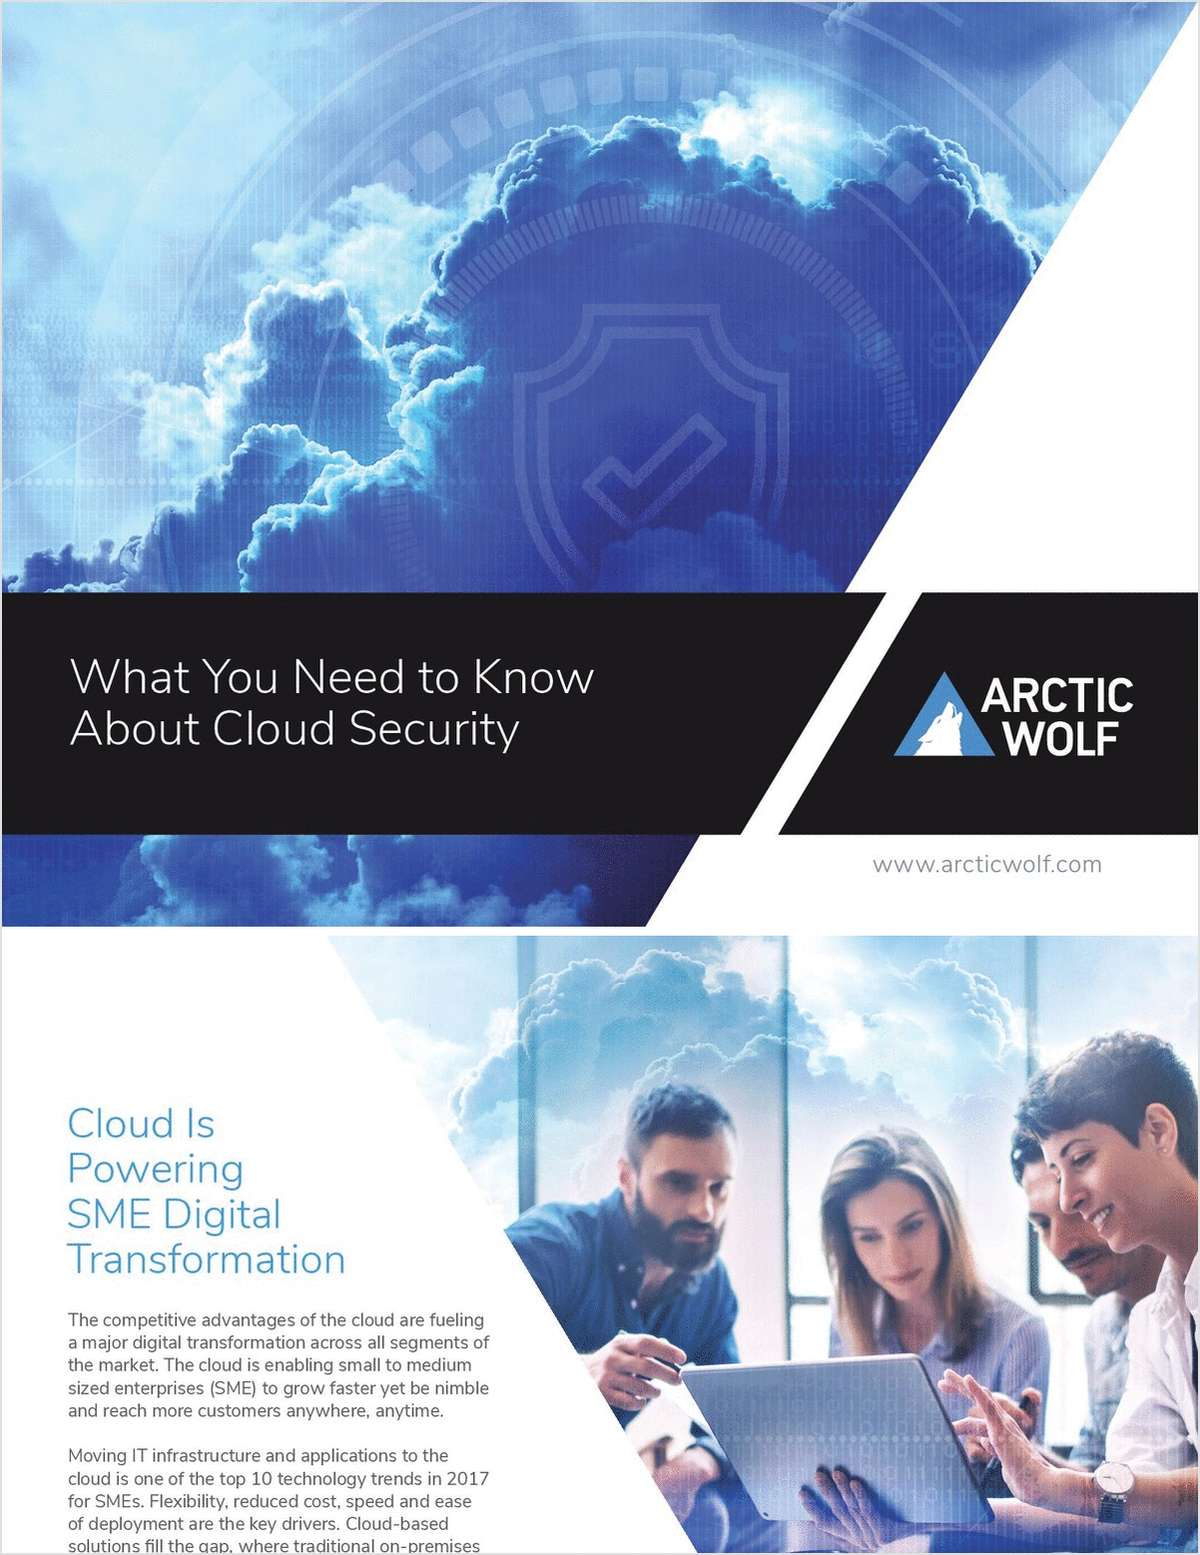 What You Need to Know About Cloud Security